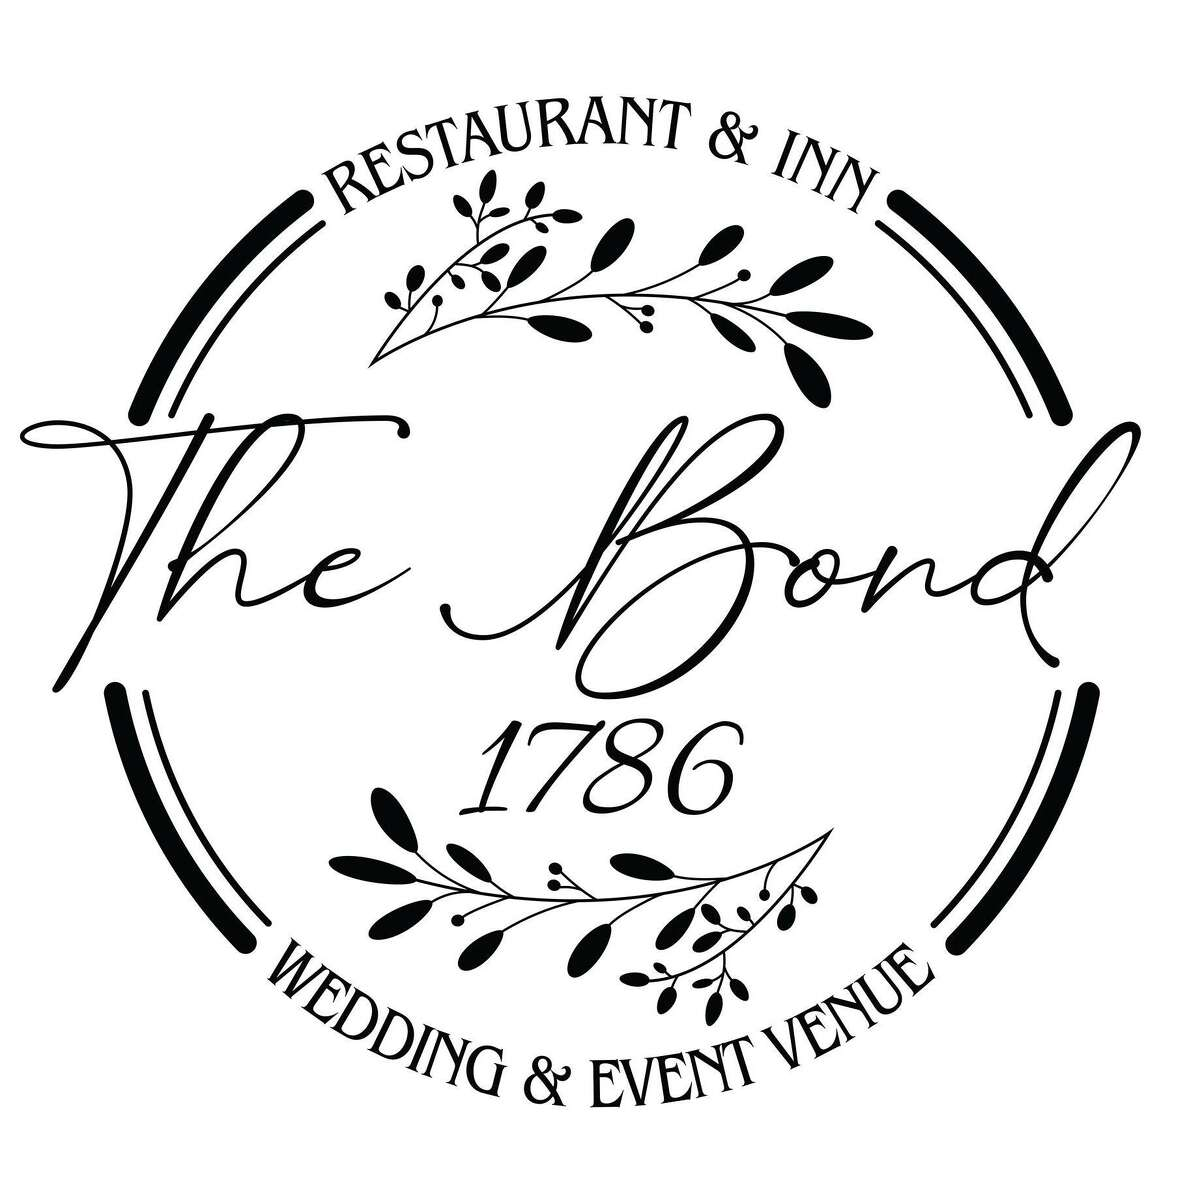 The Bond 1786, located at 3 Hudson St. in Warrensburg, Warren County, is now open for business, serving dinner five nights a week. Read more.